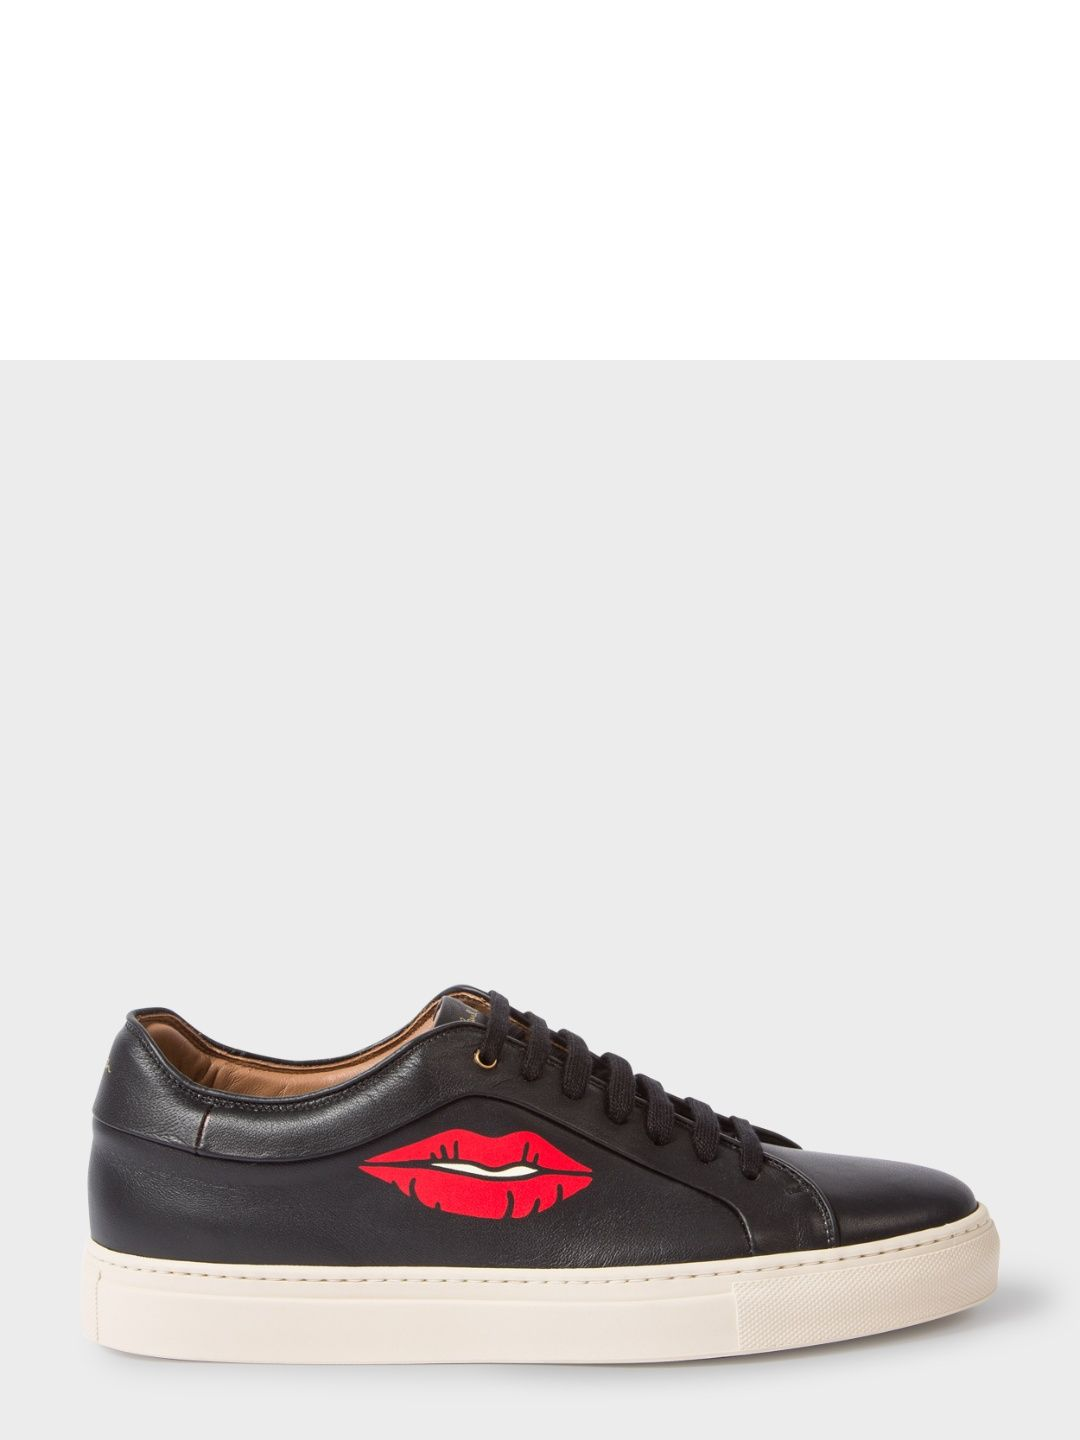 7c020f5310b PAUL SMITH Men's Black Leather 'Basso' Trainers With Lips Print ...